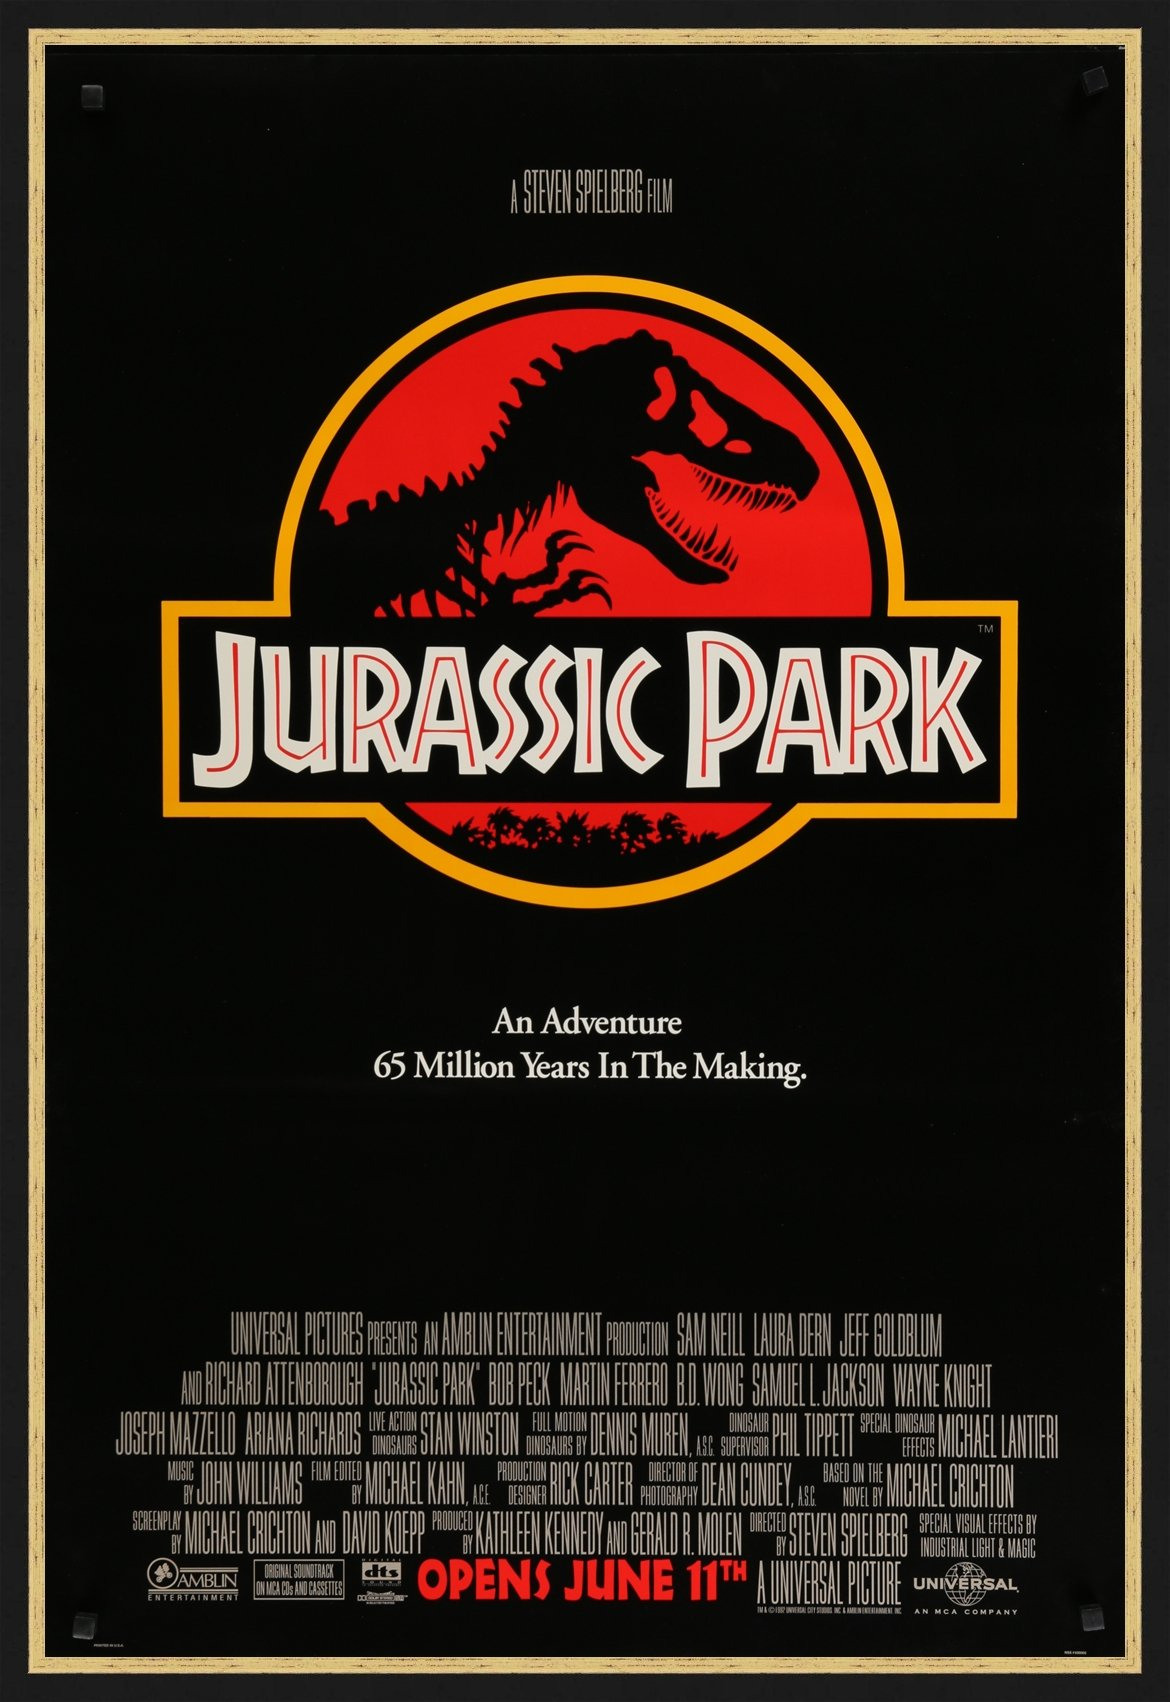 jurassic_park_advance_JC11660_C2_framed.jpg